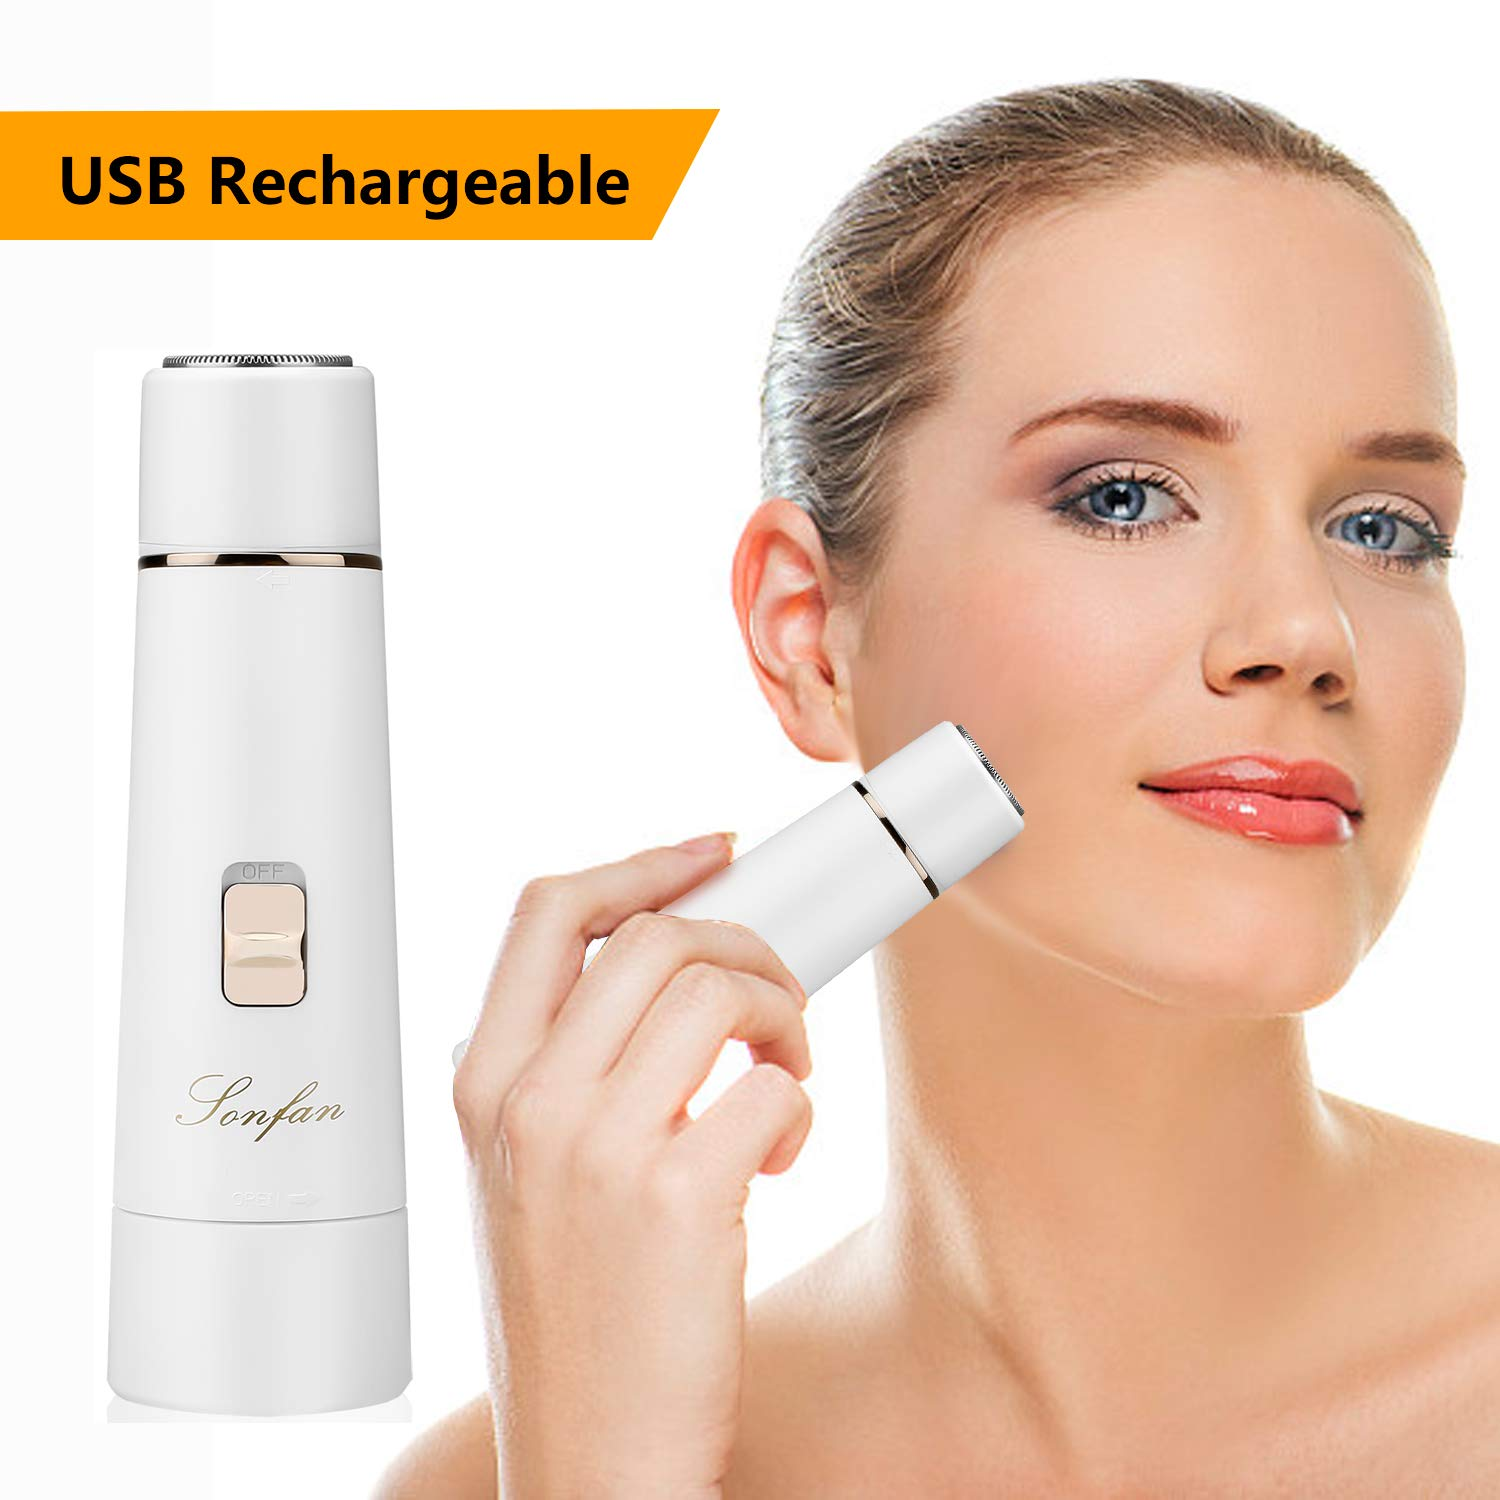 Facial Hair Removal for Women Rechargeable - 2019 USB Rechargeable Hair Remover Trimmer for Face, Armpit, Chin and Full Body, Best Gift for Women